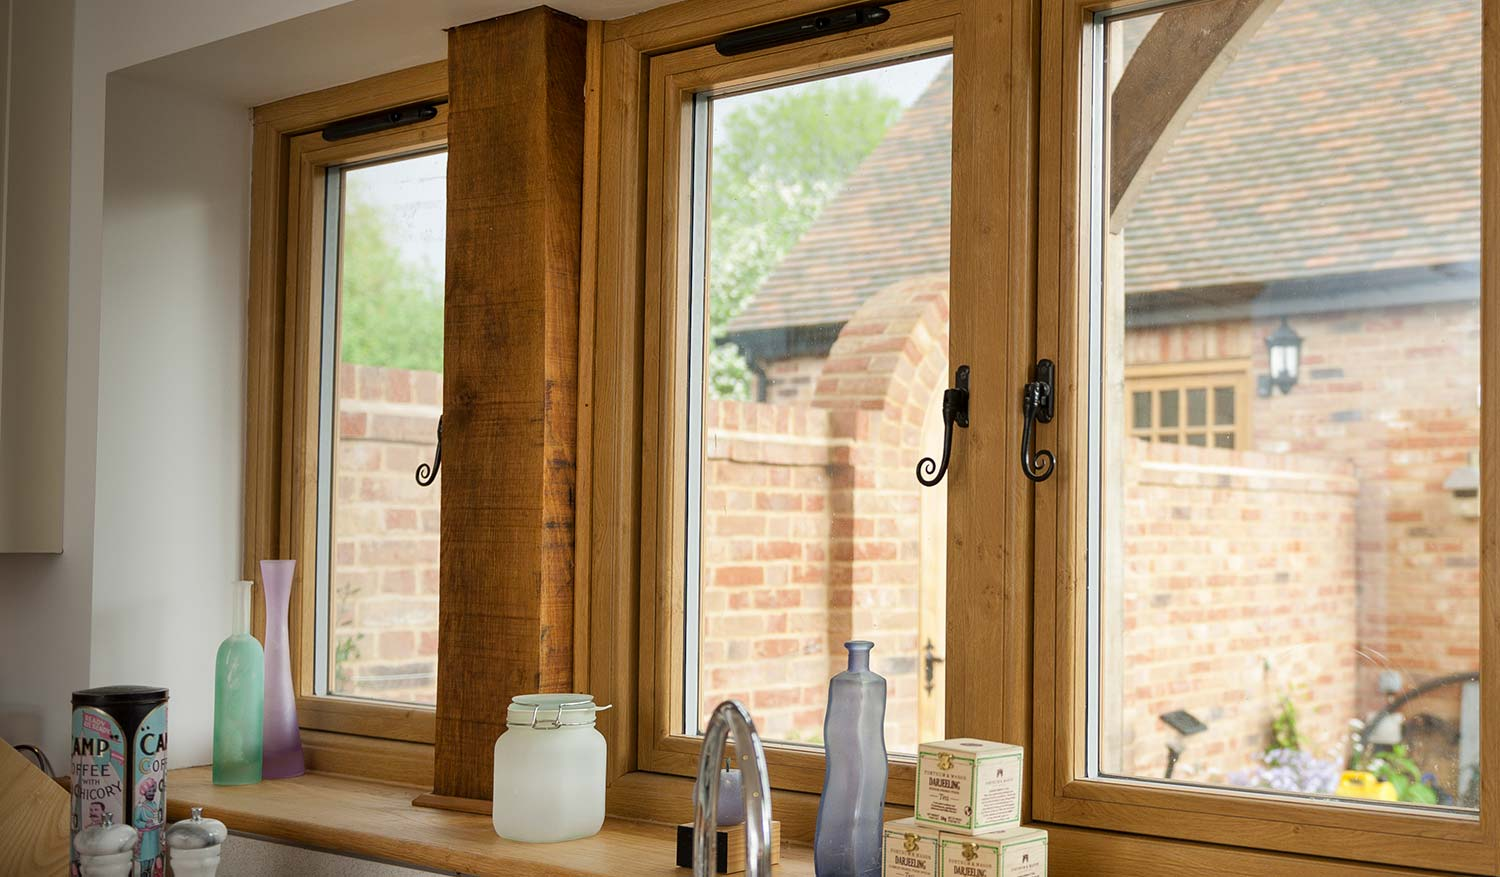 Flush sash upvc window that looks like an oak window